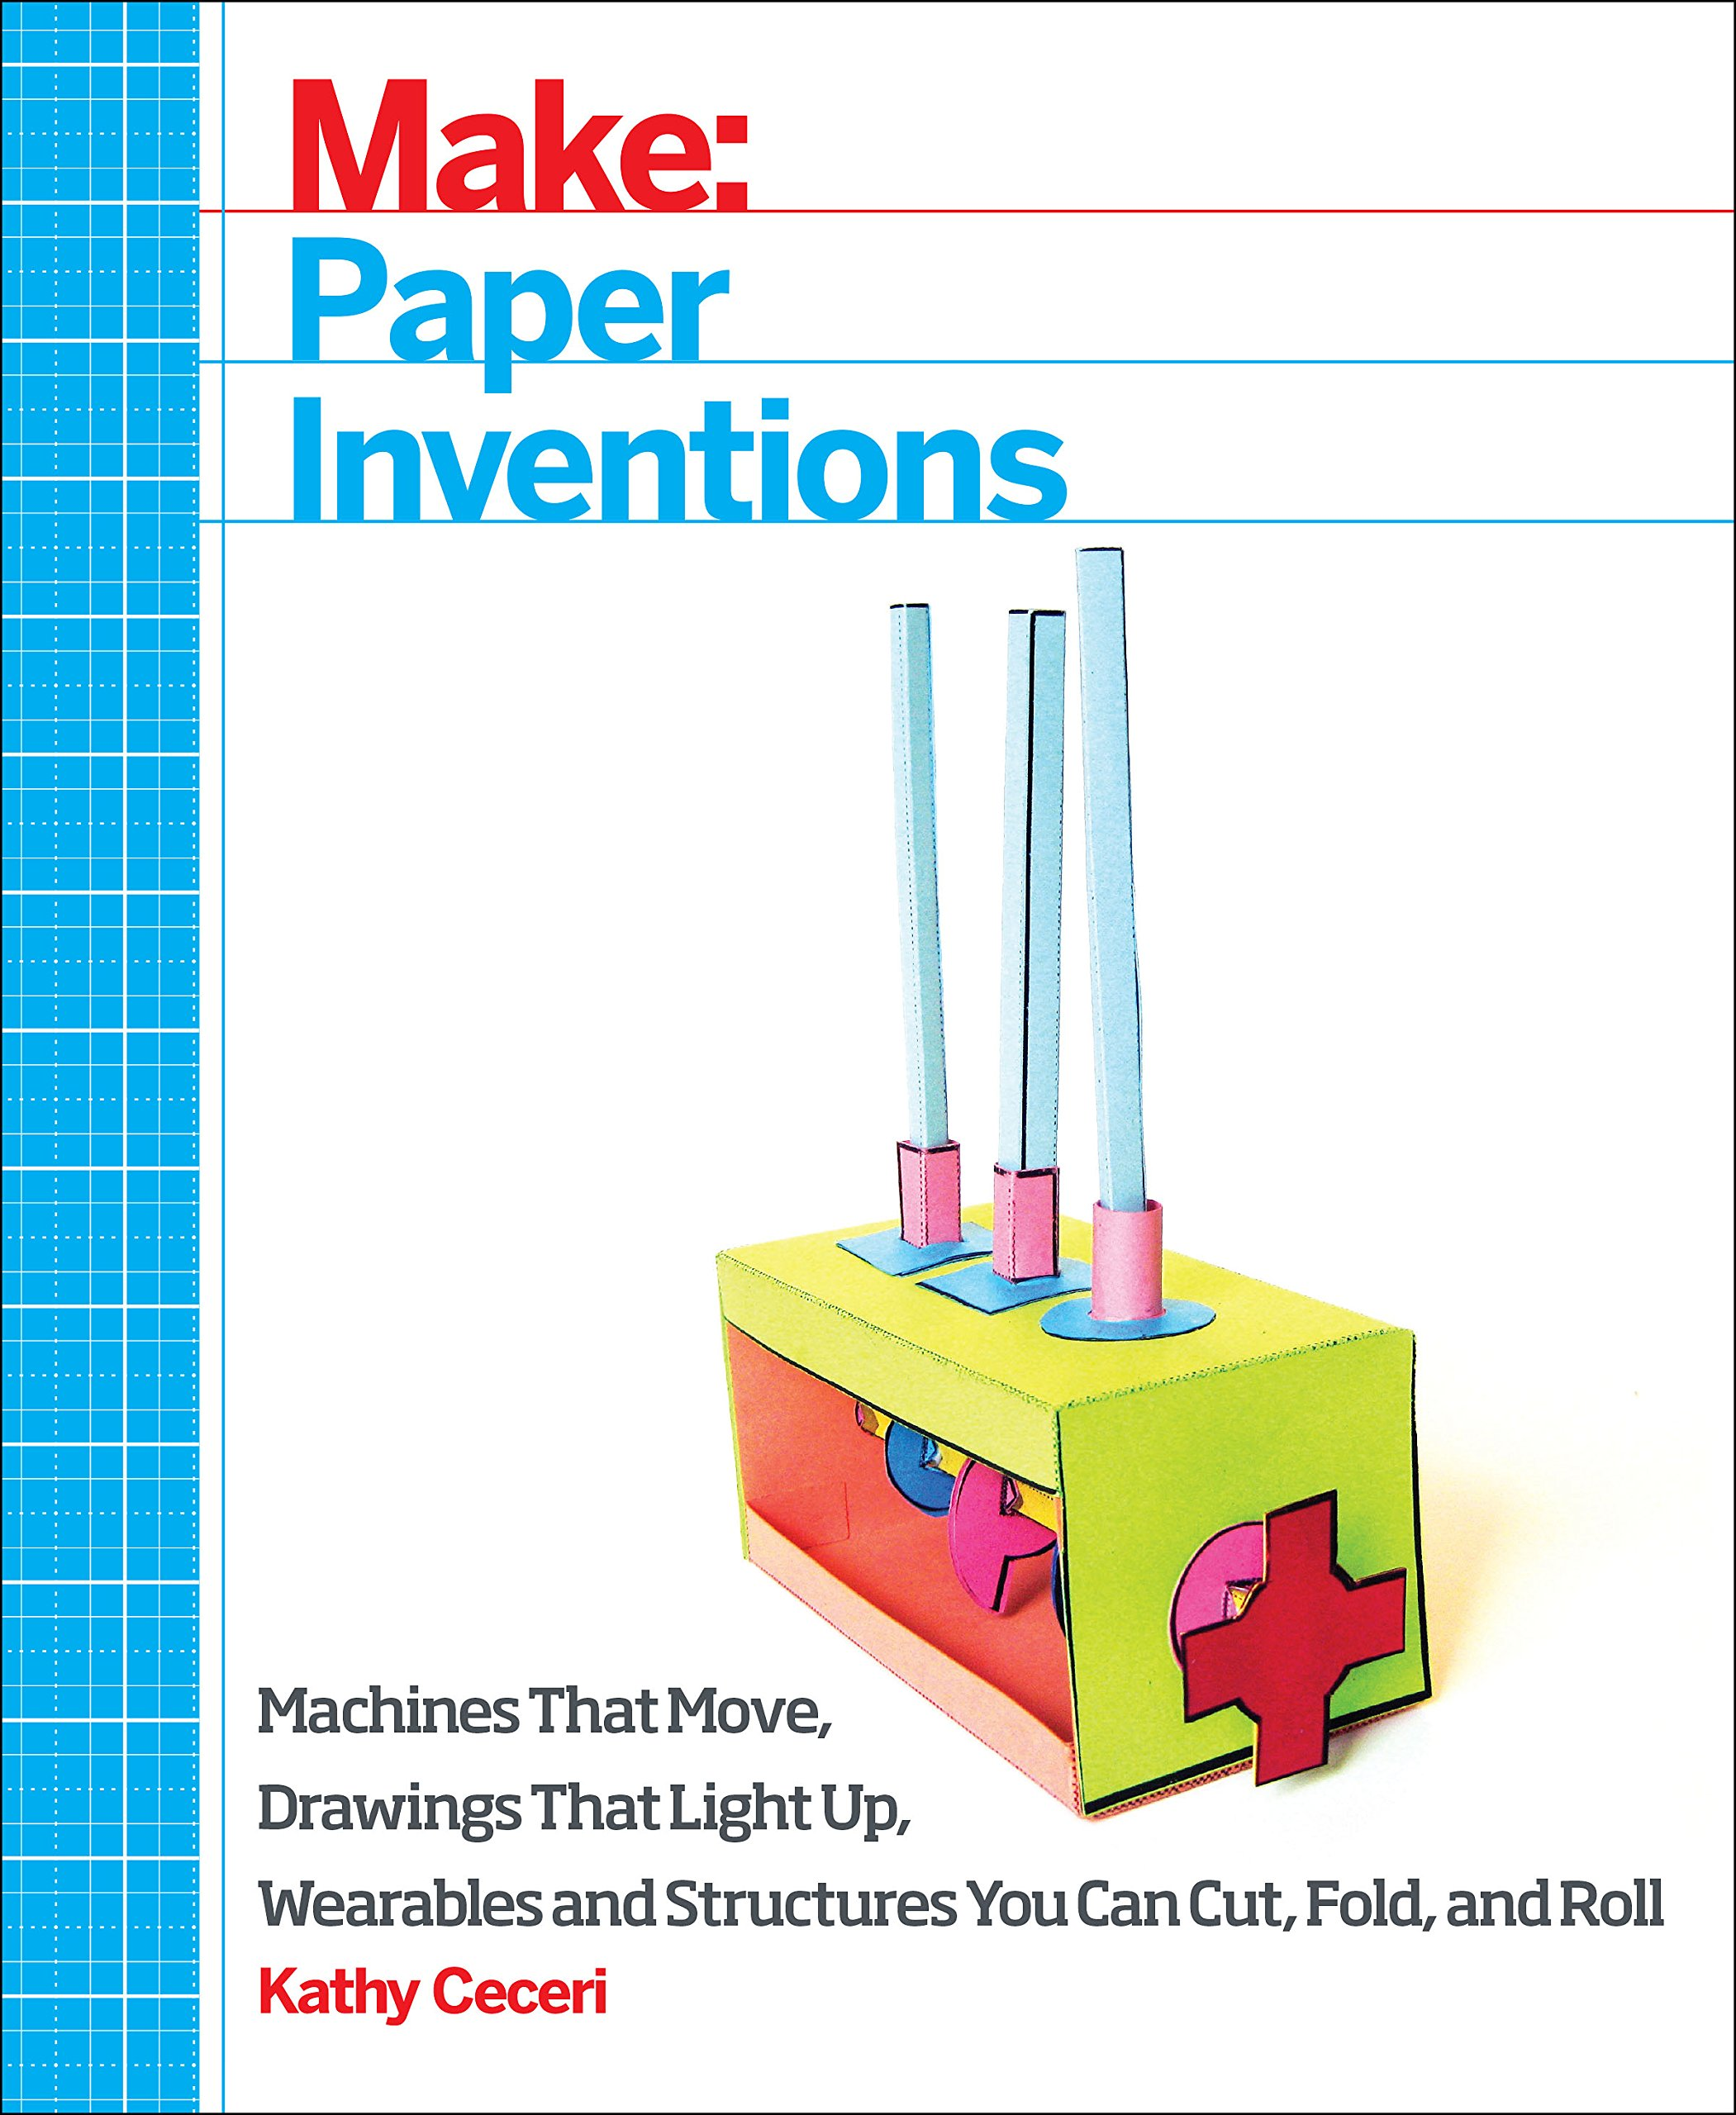 Maker Faire | Paper Inventions and Other Maker Arts for Kids